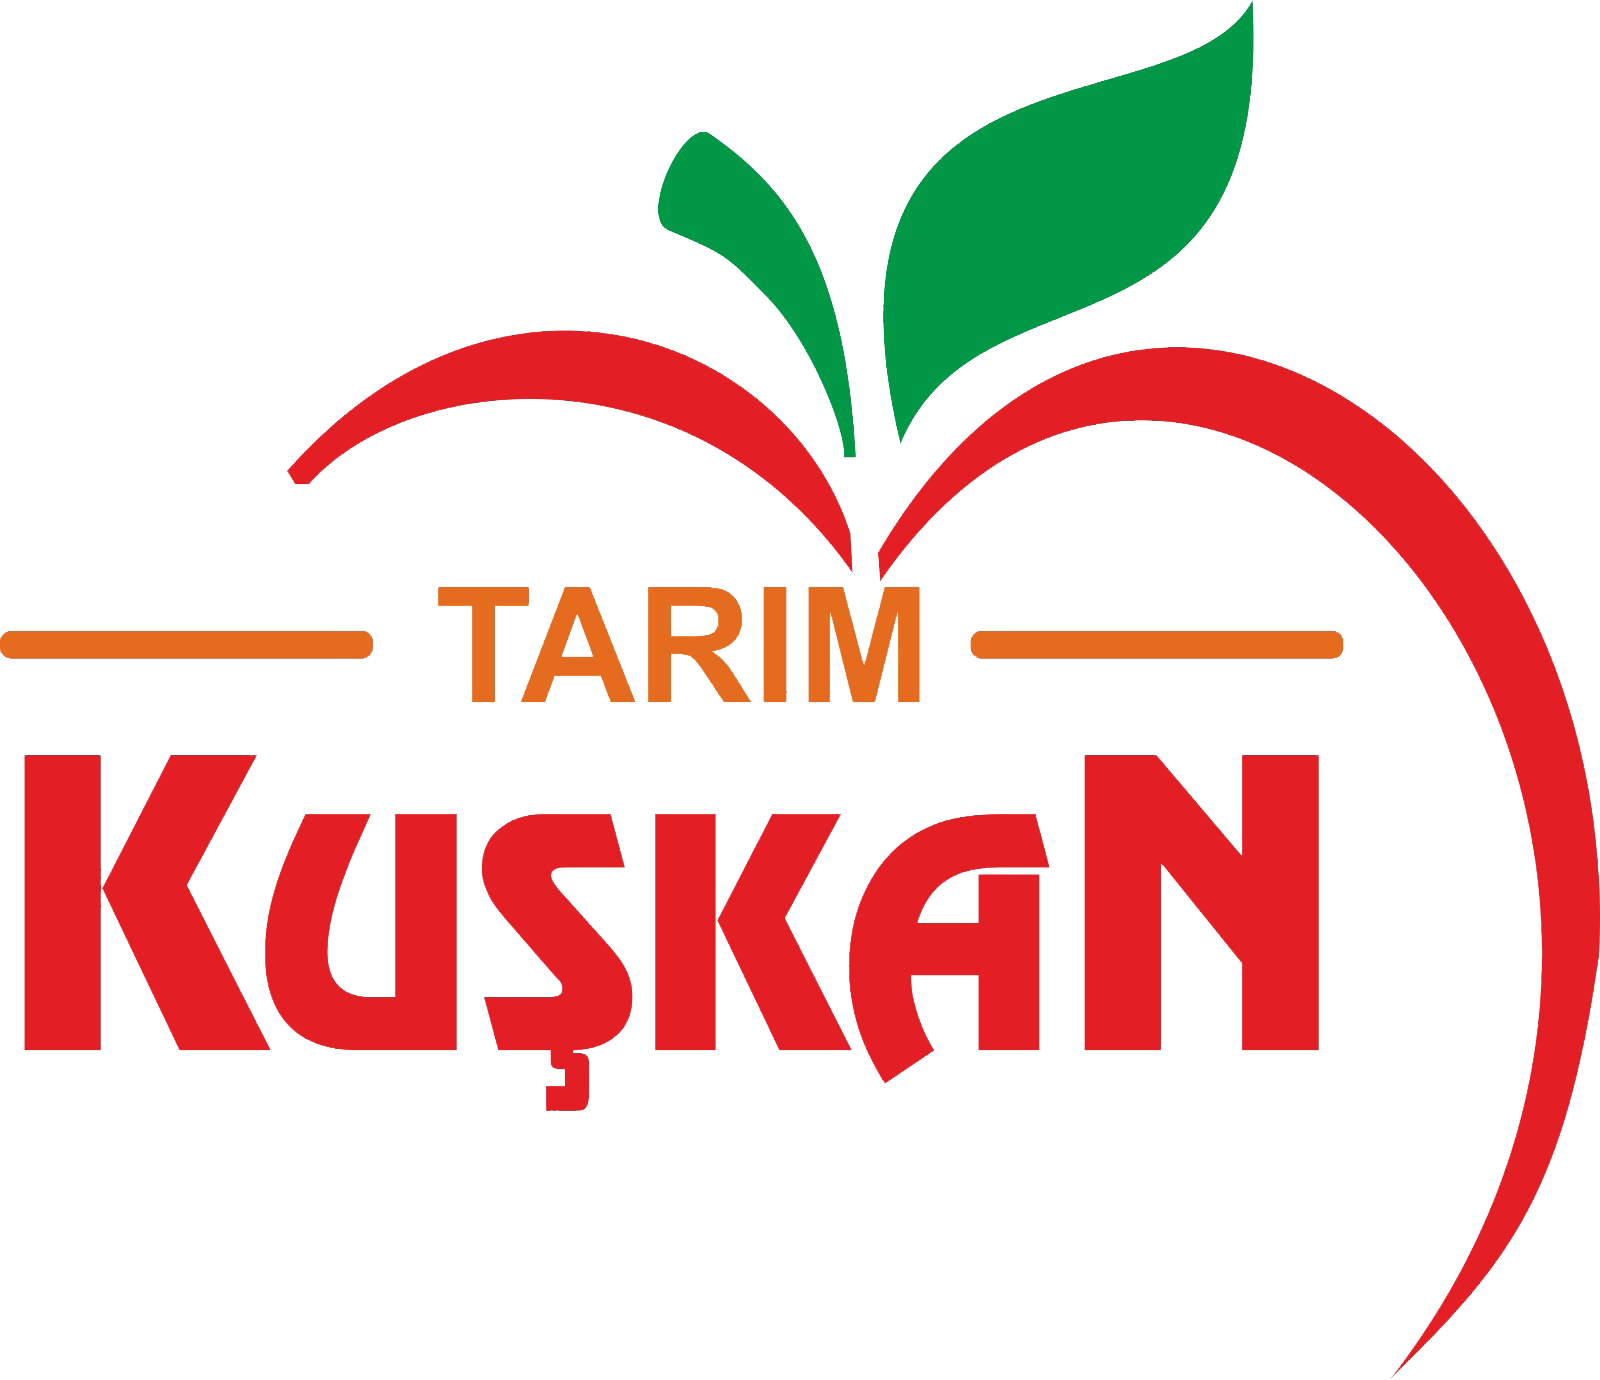 testcarousel - image kuskan on https://kuskantarim.com